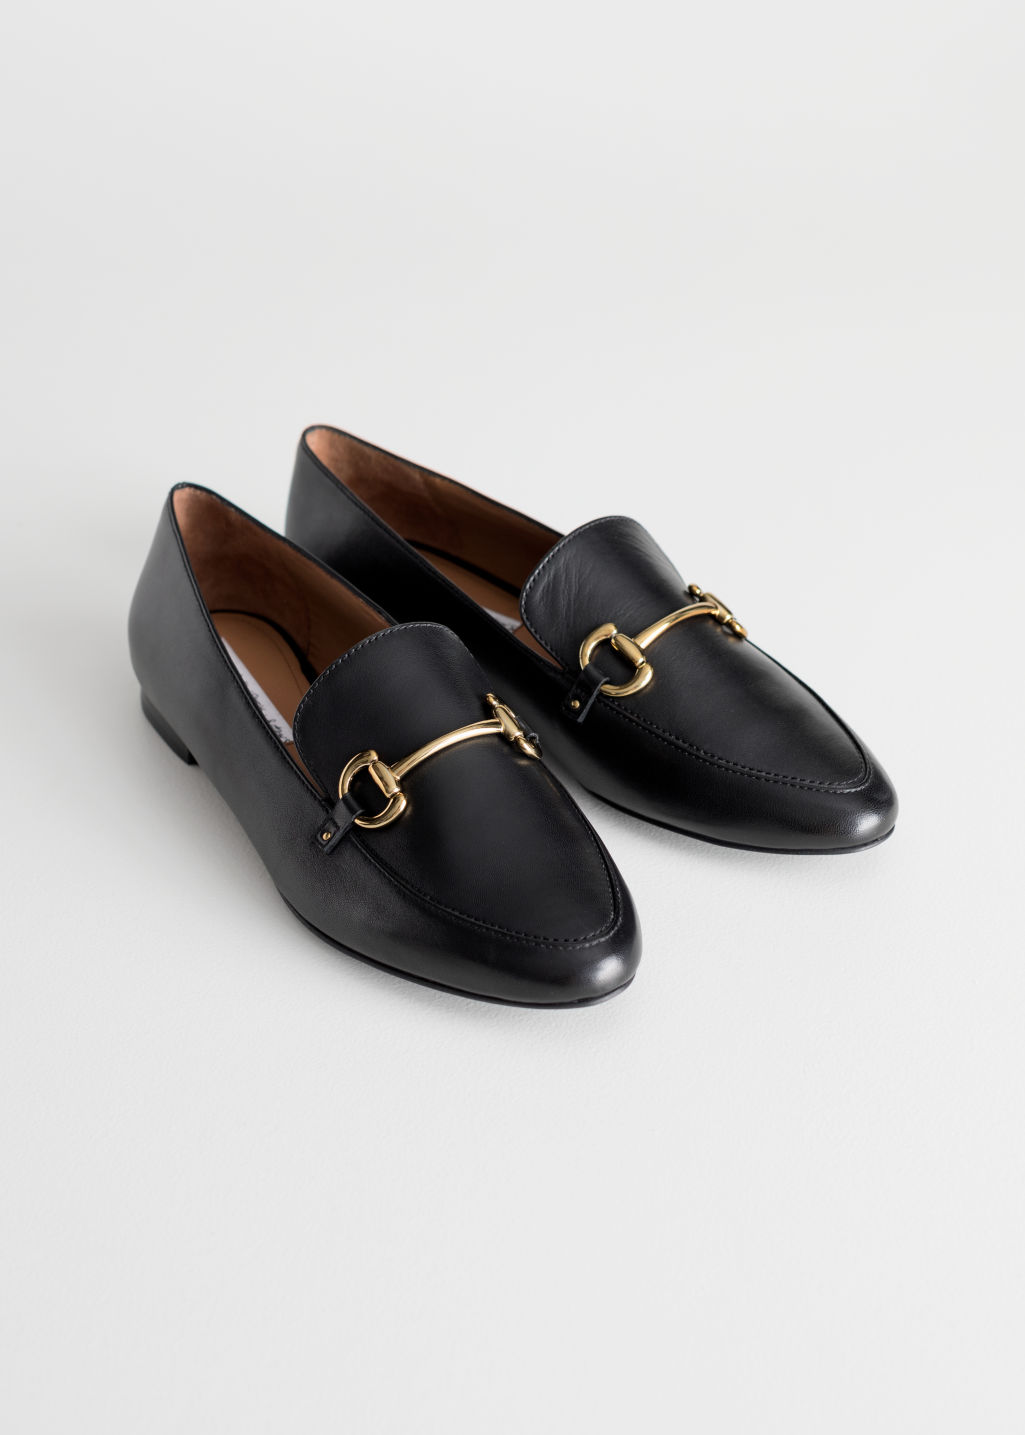 StillLife Top Image of Stories Equestrian Buckle Loafers in Black